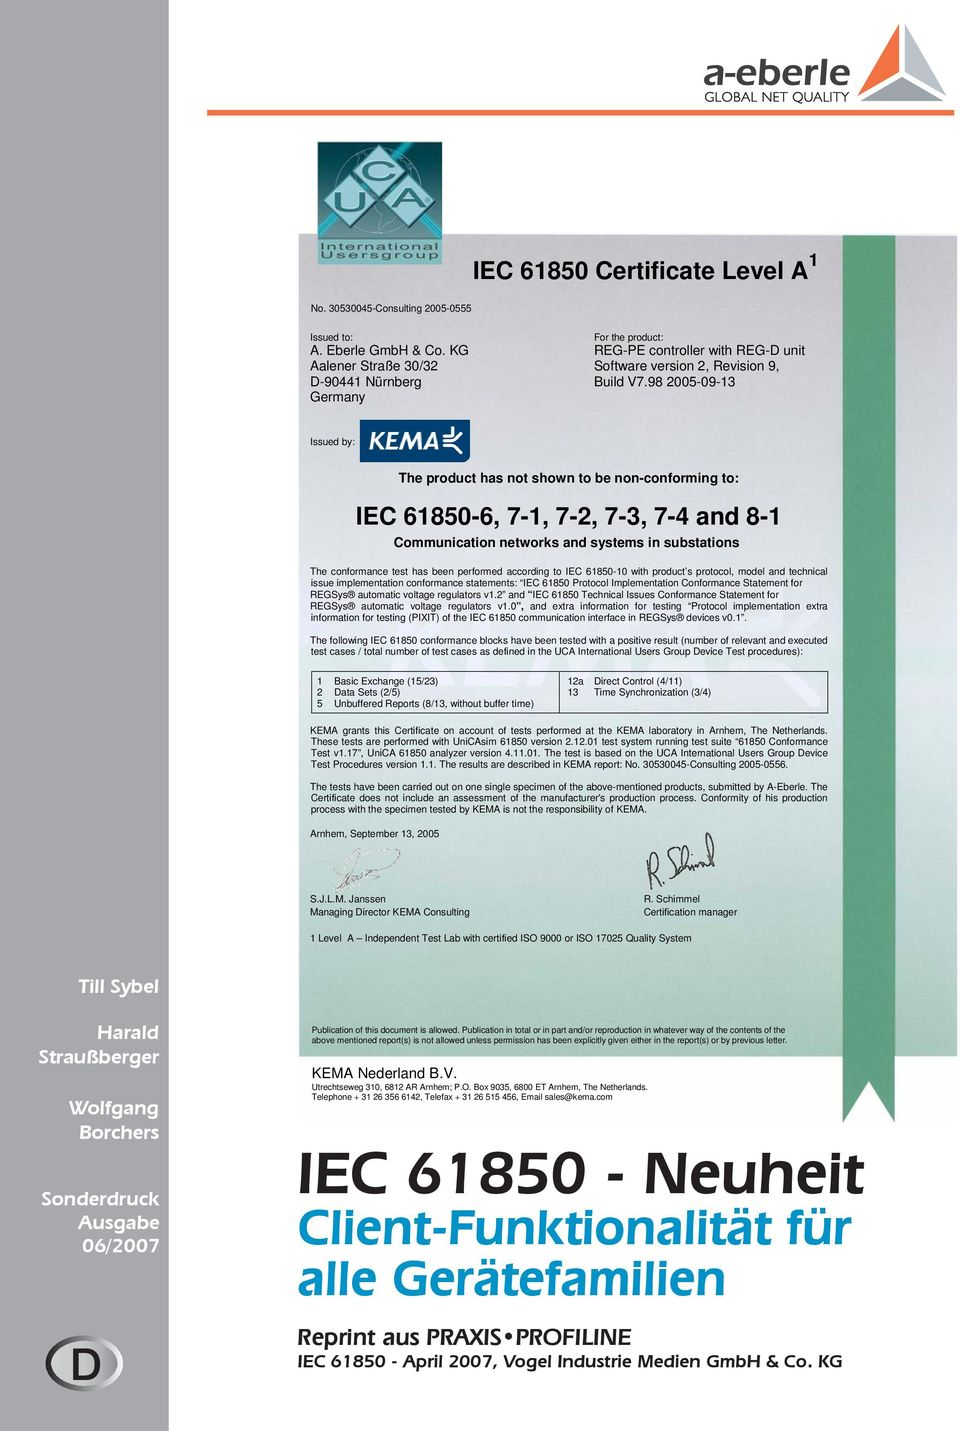 98 2005-09-13 Germany Issued by: The product has not shown to be non-conforming to: IEC 61850-6, 7-1, 7-2, 7-3, 7-4 and 8-1 Communication networks and systems in substations The conformance test has